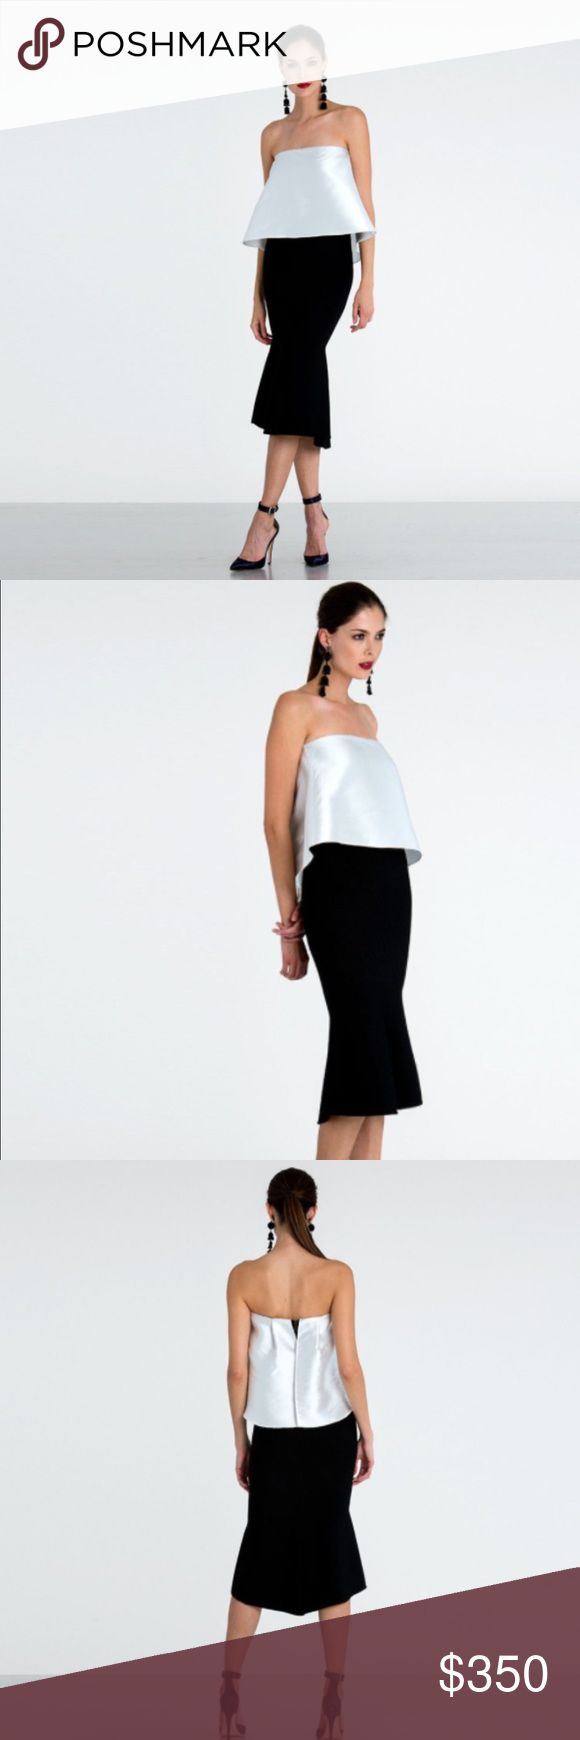 NWT Sachin & Babi Olivia Dress M (fits S) NWT Olivia Dress Regular price$375 Sold Out!!! Baring the shoulders and fitting on the silhouette, the Olivia dress is polished and refined, just like you. Ideal for celebrations or special occasions. Designer's Notes Fitted knit dress with ivory mikado peplum and subtle fishtail shape at skirt Fabric Imago & Knit Garment care Dry Clean Only Note: I normally wear a 4 bra size 32DD. This dress fits like a glove through the bodice, but is a little big…